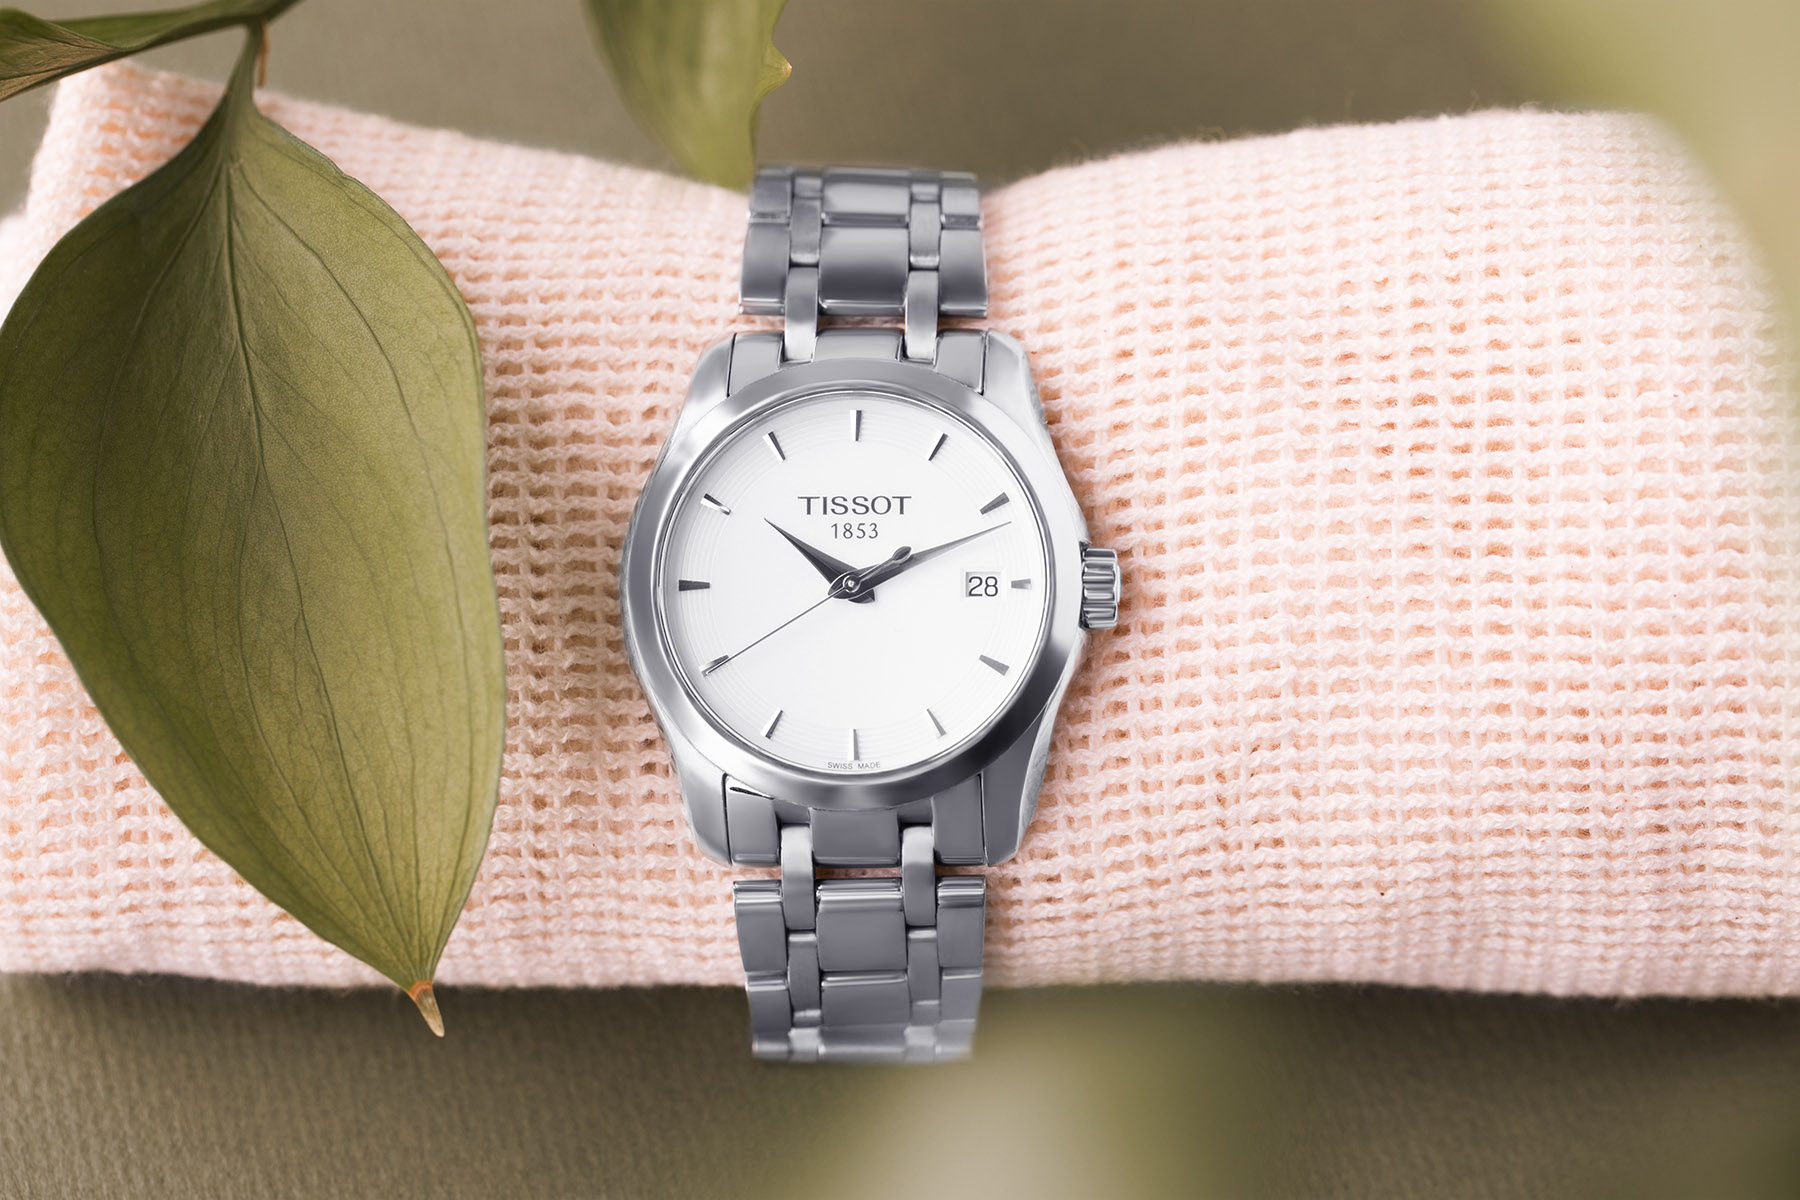 Commercial photography of Tissot watch by Loesje Kessels Fashion Photographer Dubai